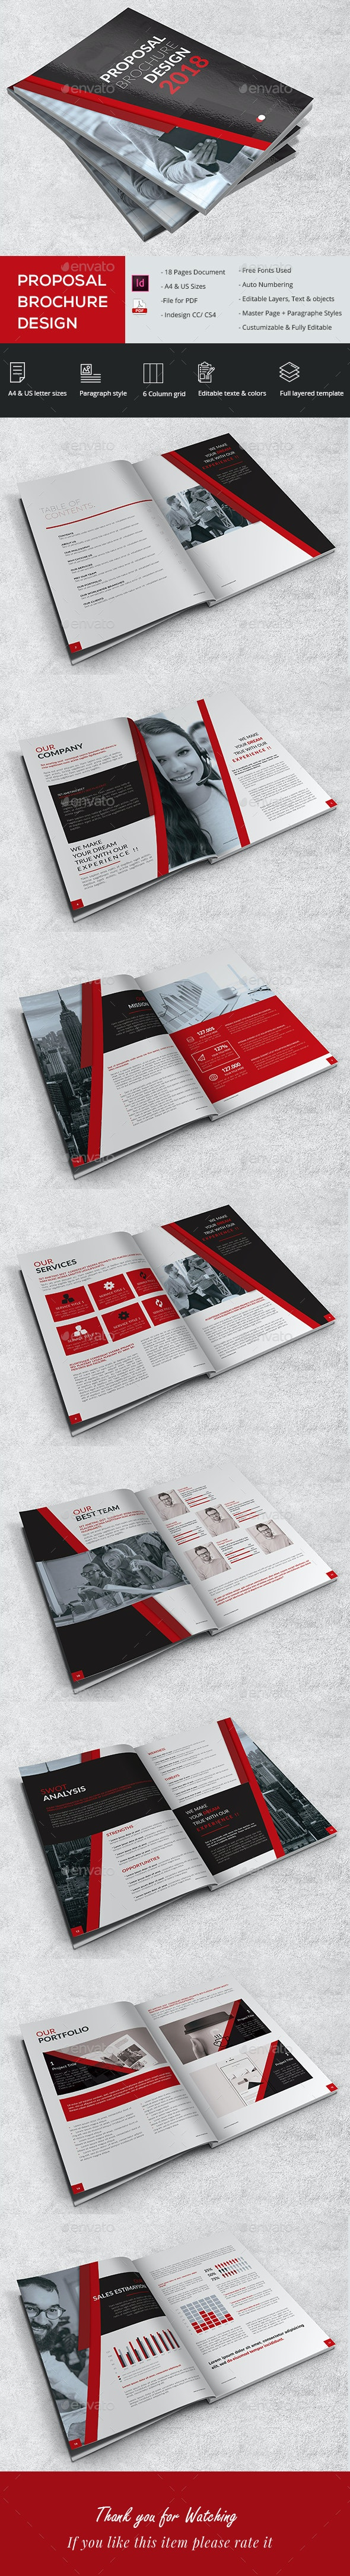 Proposal Brochure Design - Brochures Print Templates